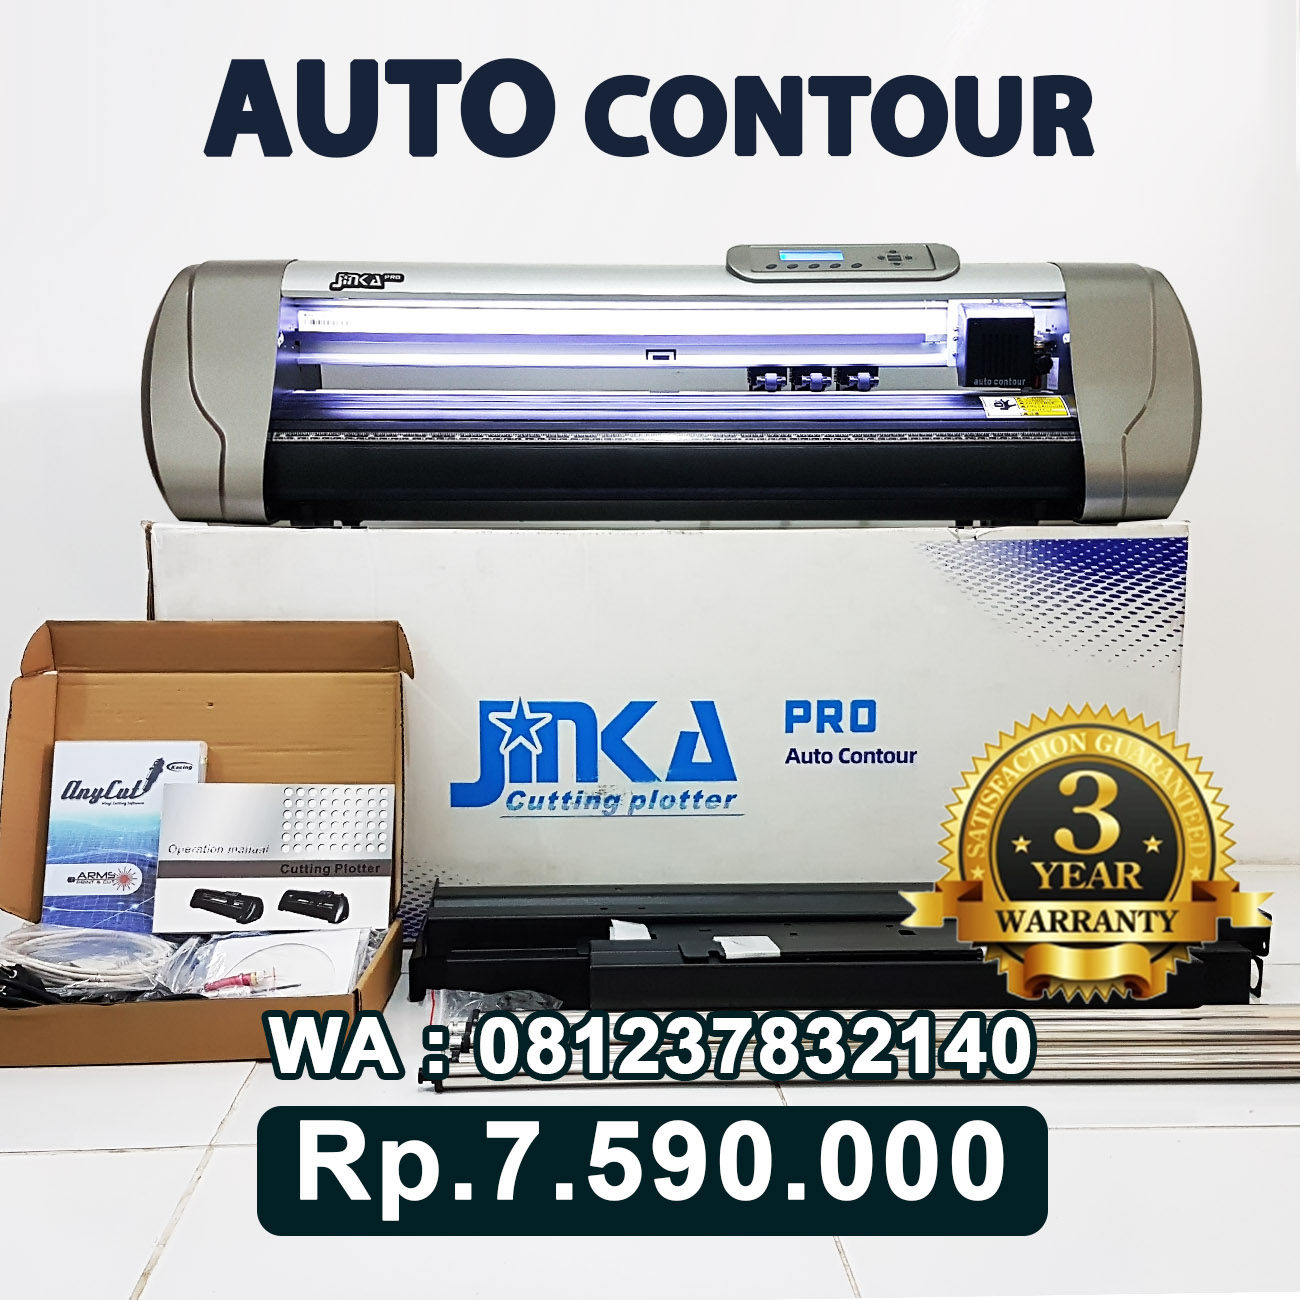 JUAL MESIN CUTTING STICKER JINKA PRO 722 LED AUTO CONTOUR CUT Kalimantan Selatan Kalsel